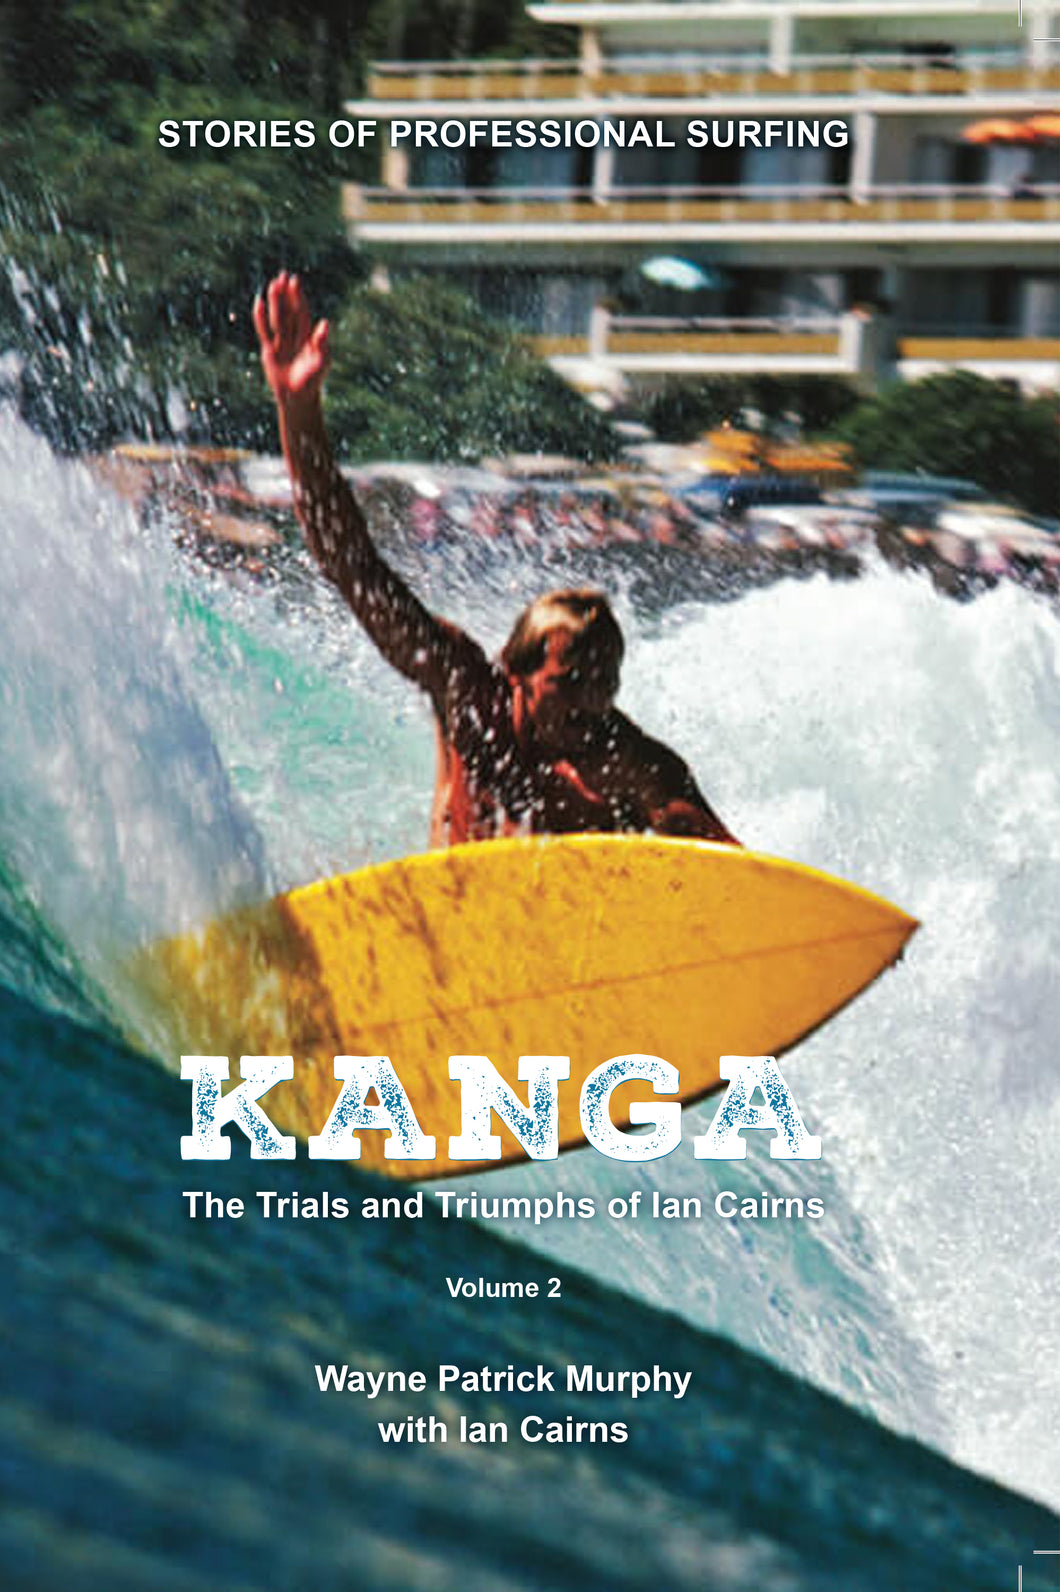 Kanga: The Trials and Triumphs of Ian Cairns Volume II